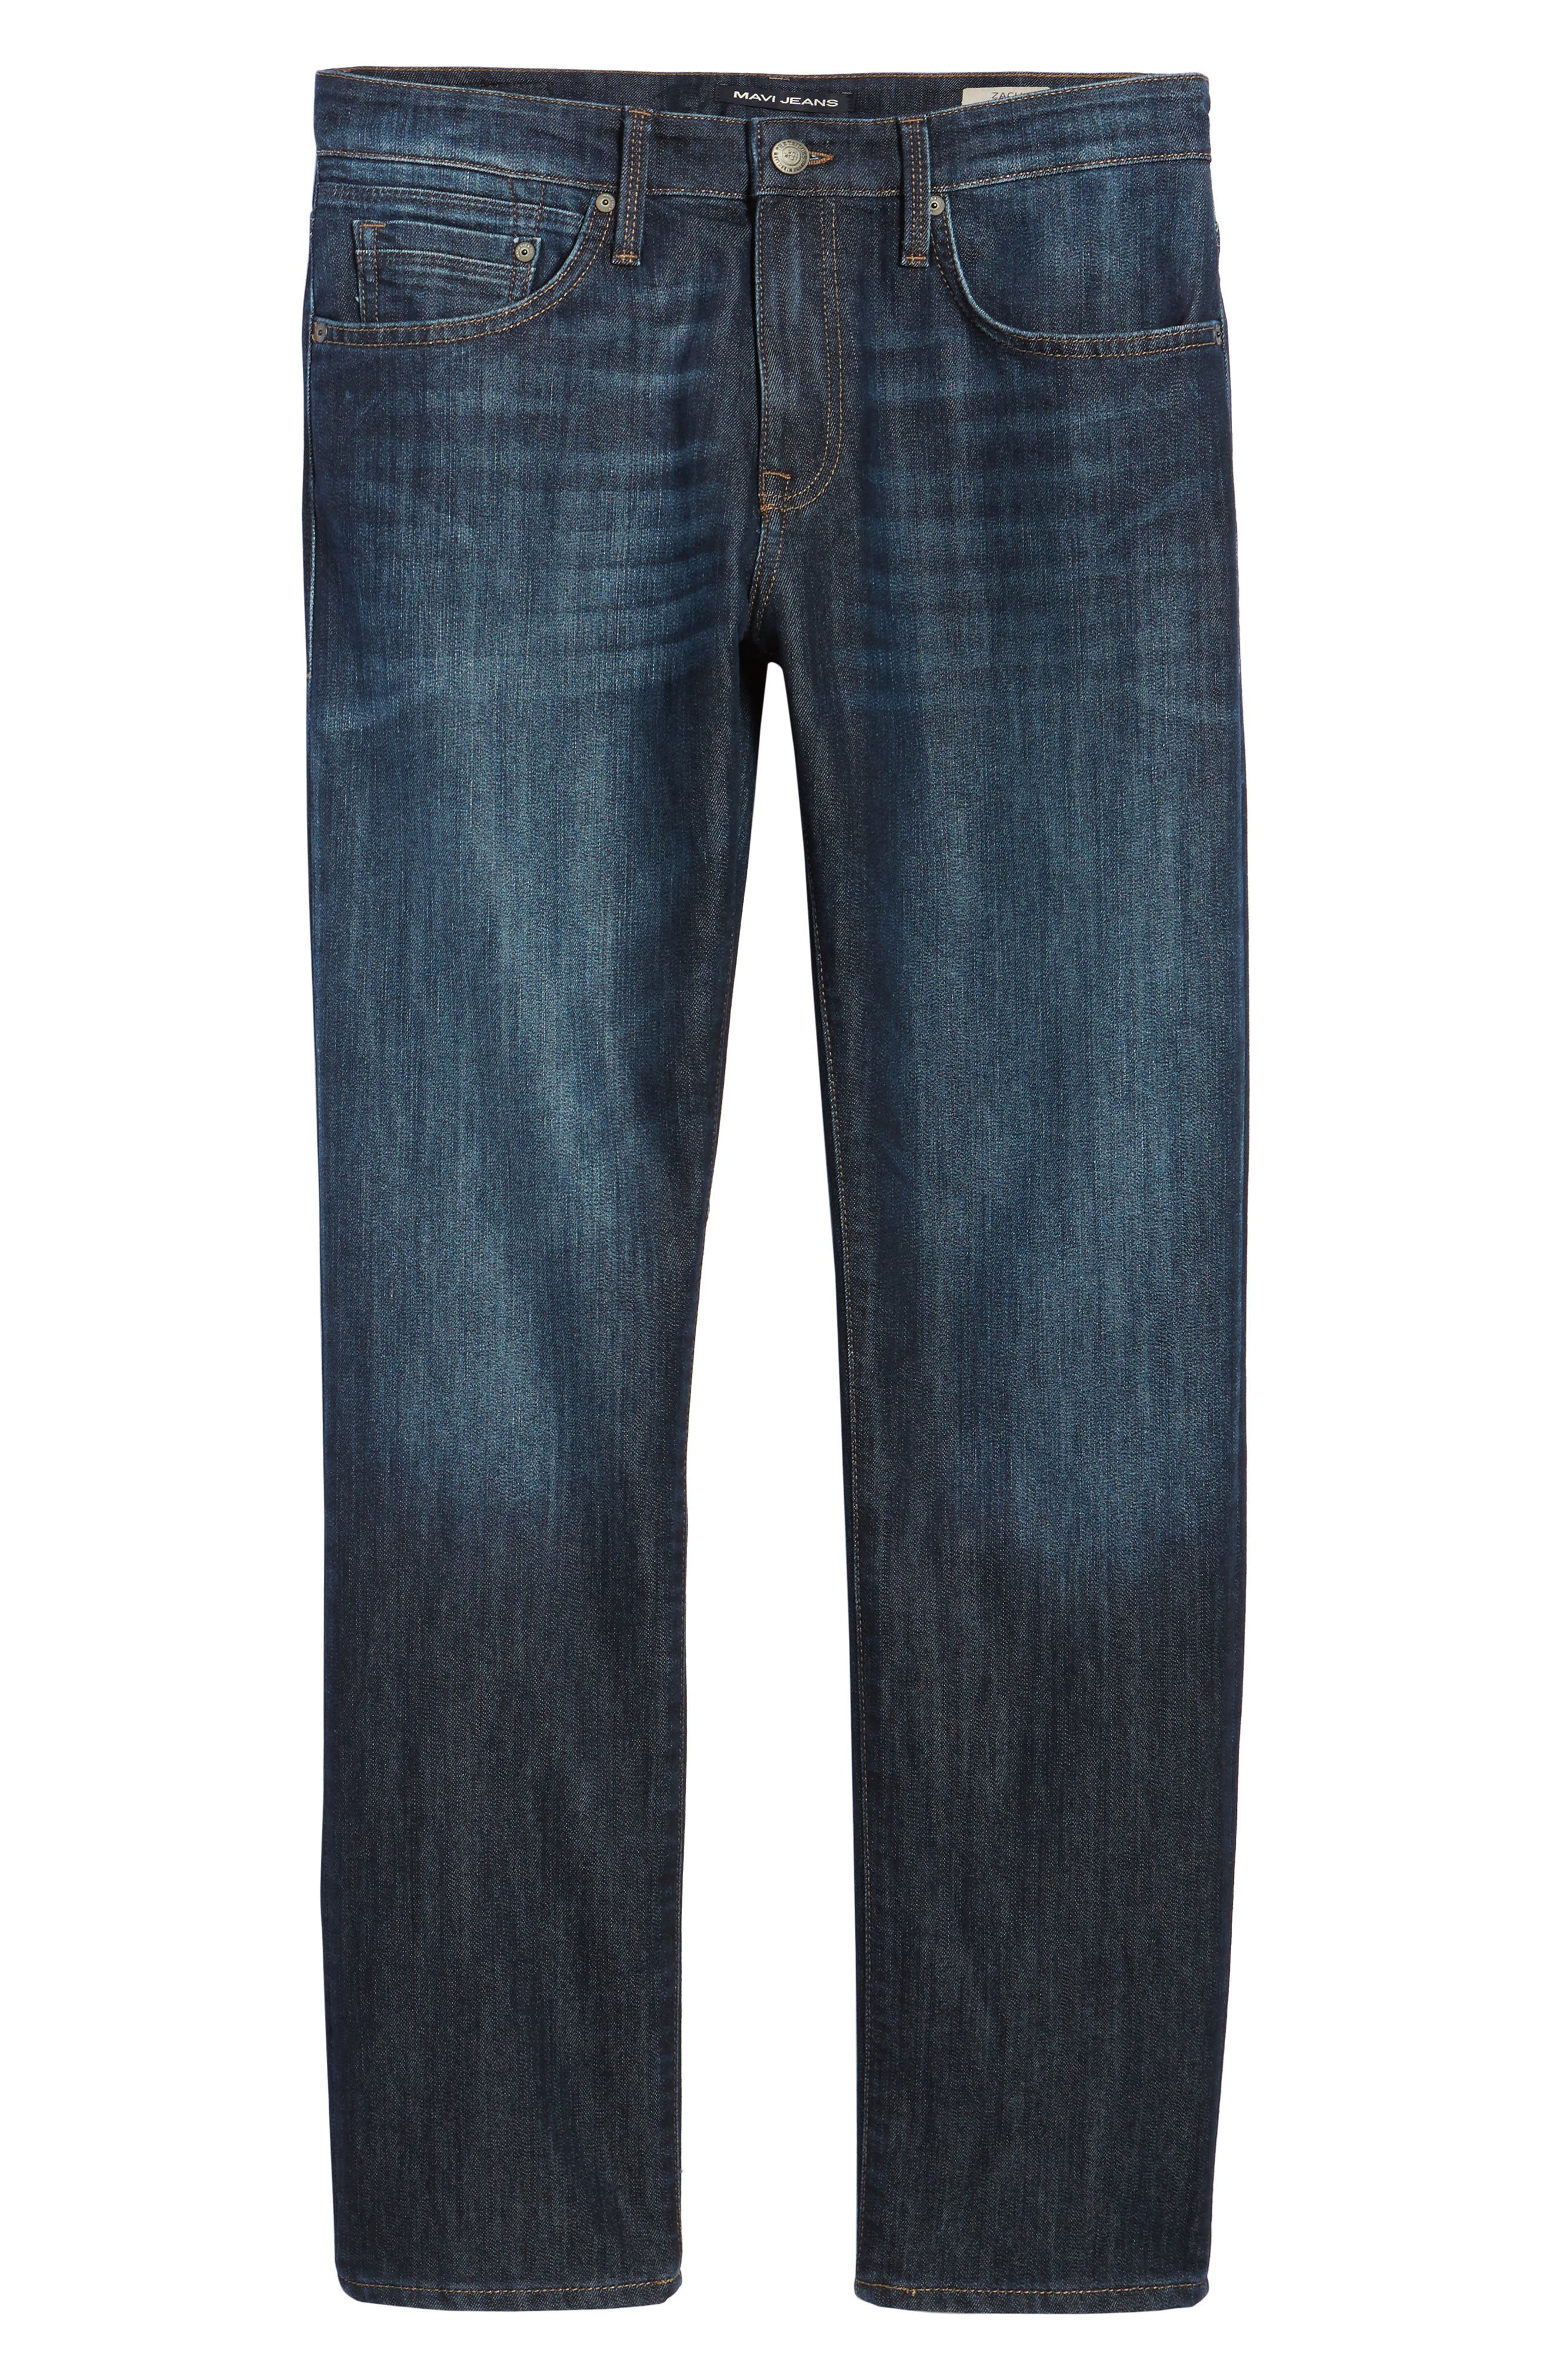 Zach Straight Leg Jeans,                             Alternate thumbnail 6, color,                             Rinse Stanford